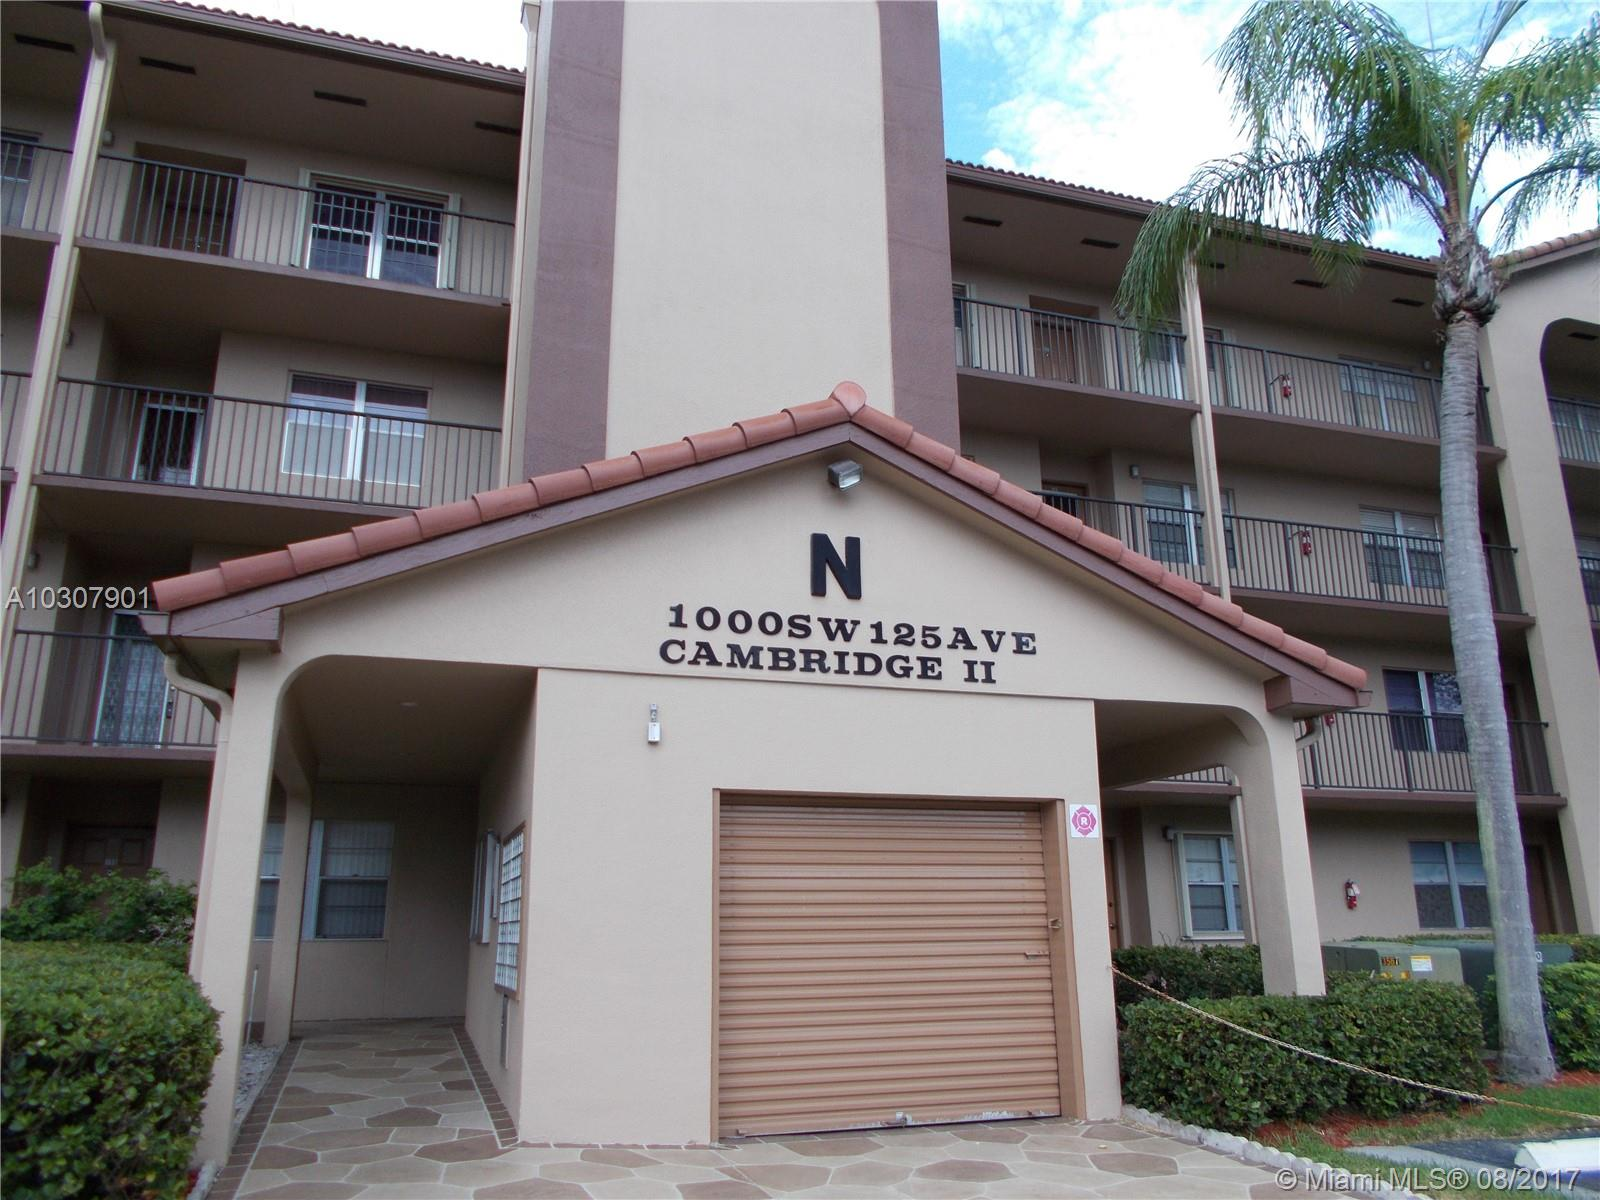 1000 SW 125th Ave # 314N, Pembroke Pines, FL 33027